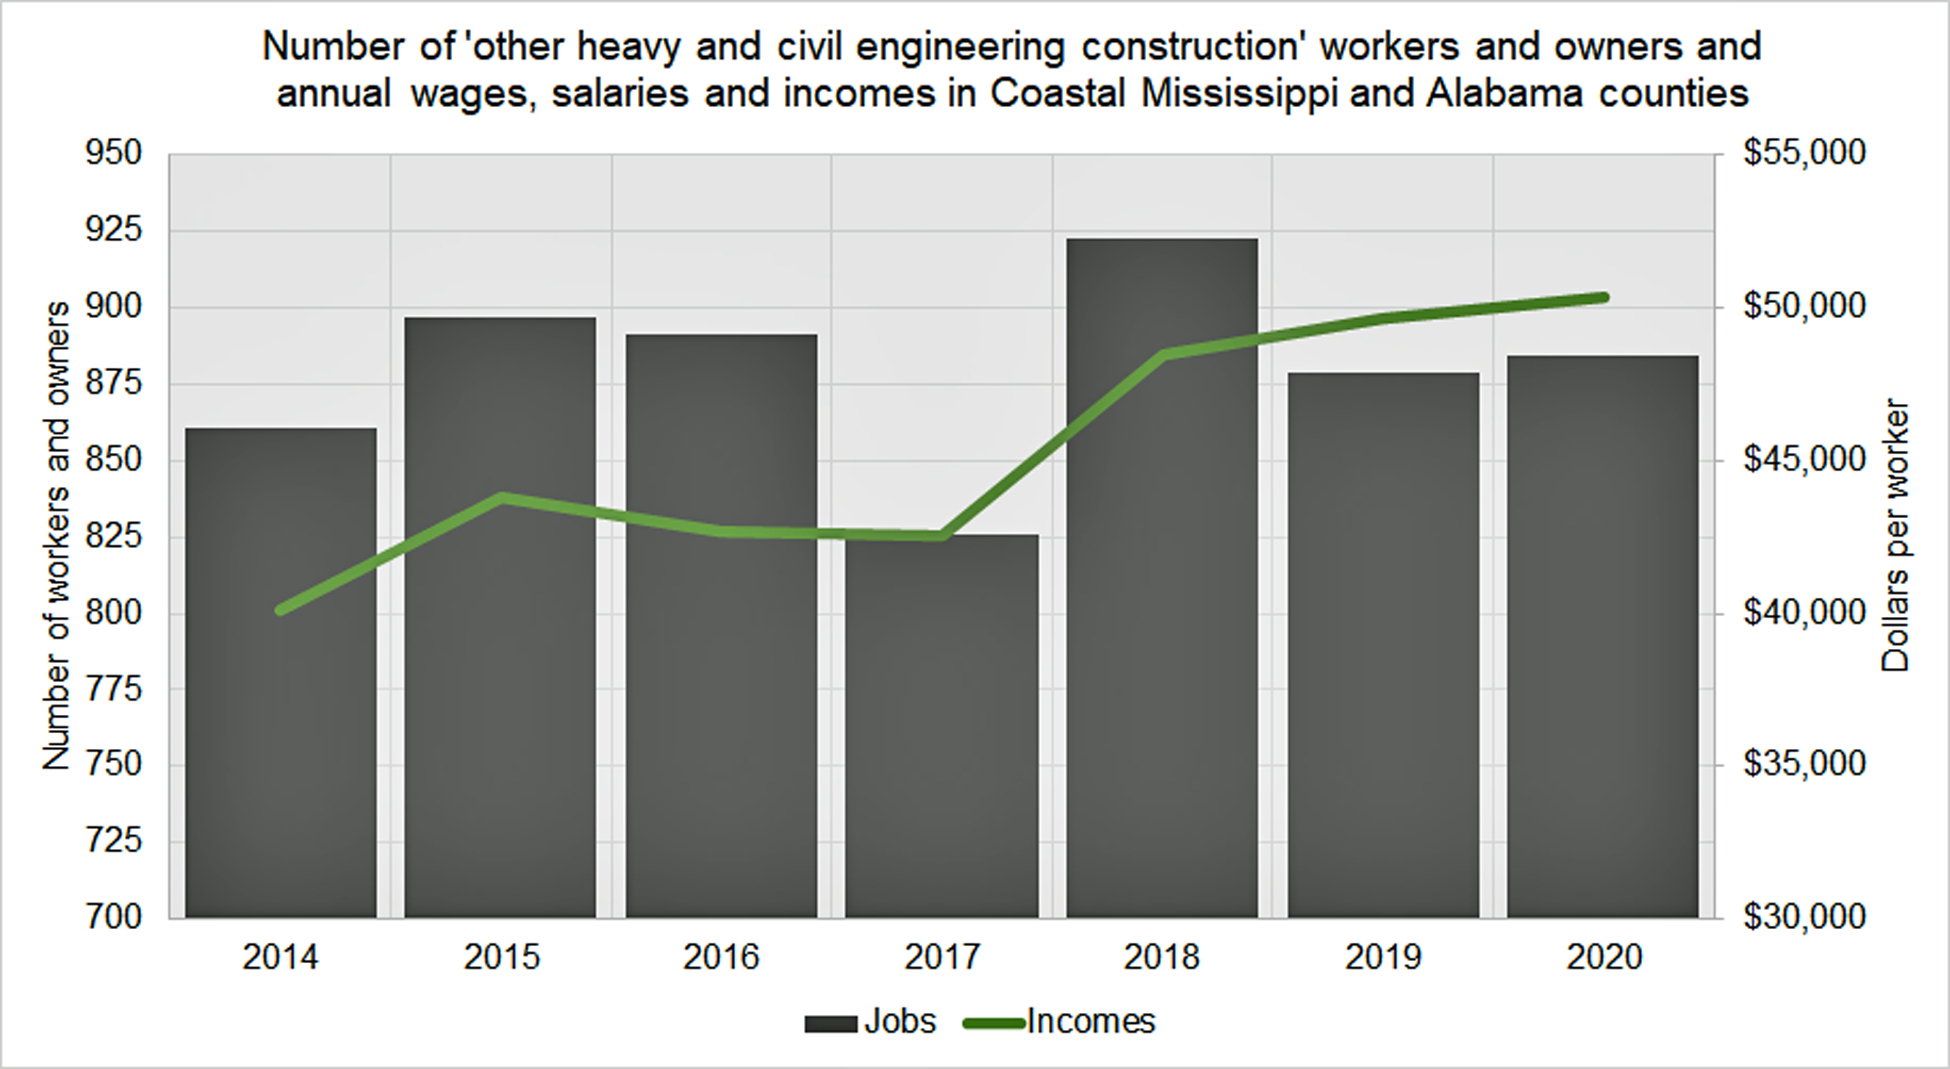 number_of_workers_and_owners_of_coastal_restoration_in_coastal_ms_and_al.jpg